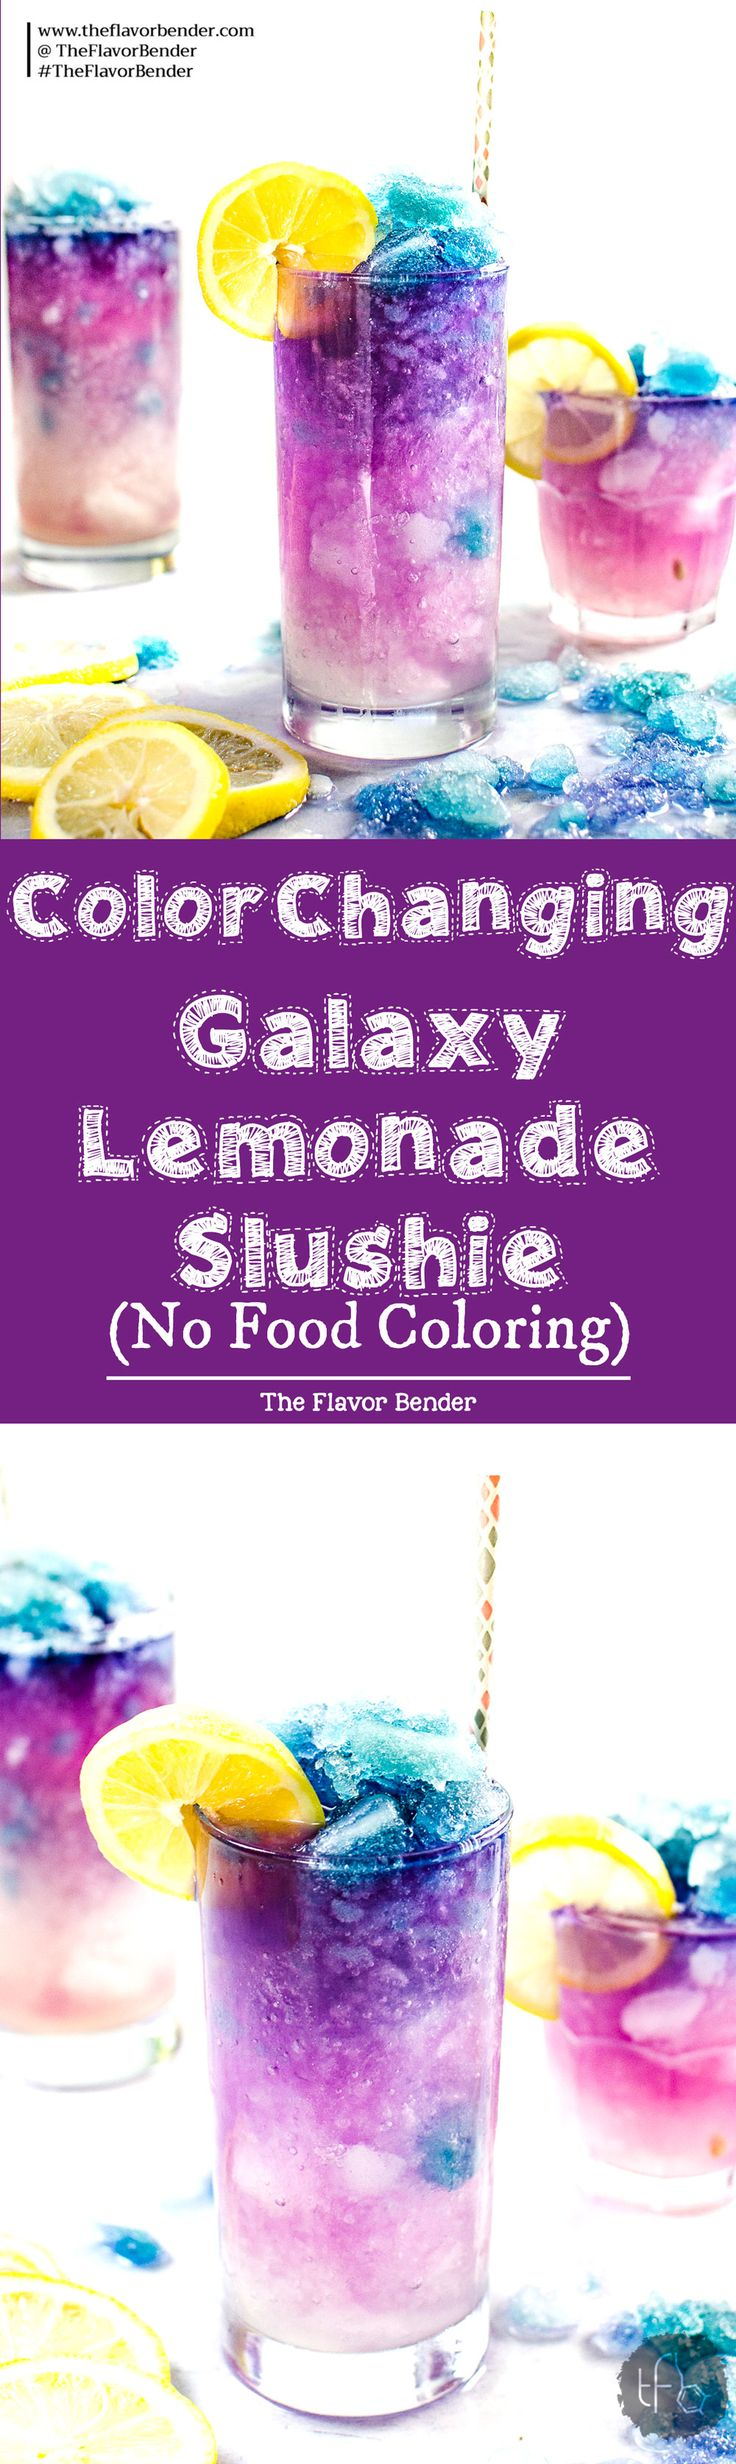 Color Changing Galaxy Lemonade Slushie - There's no food coloring in this Color Changing Lemonade Slushie! Just a dash of magic from butterfly pea magic ice and delicious lemonade that kids and adults will love. The ultimate Summer Lemonade drink! #Butterflypea #GalaxyLemonade #ButterflypeaLemonade #ColorChangingDrinks via @theflavorbender